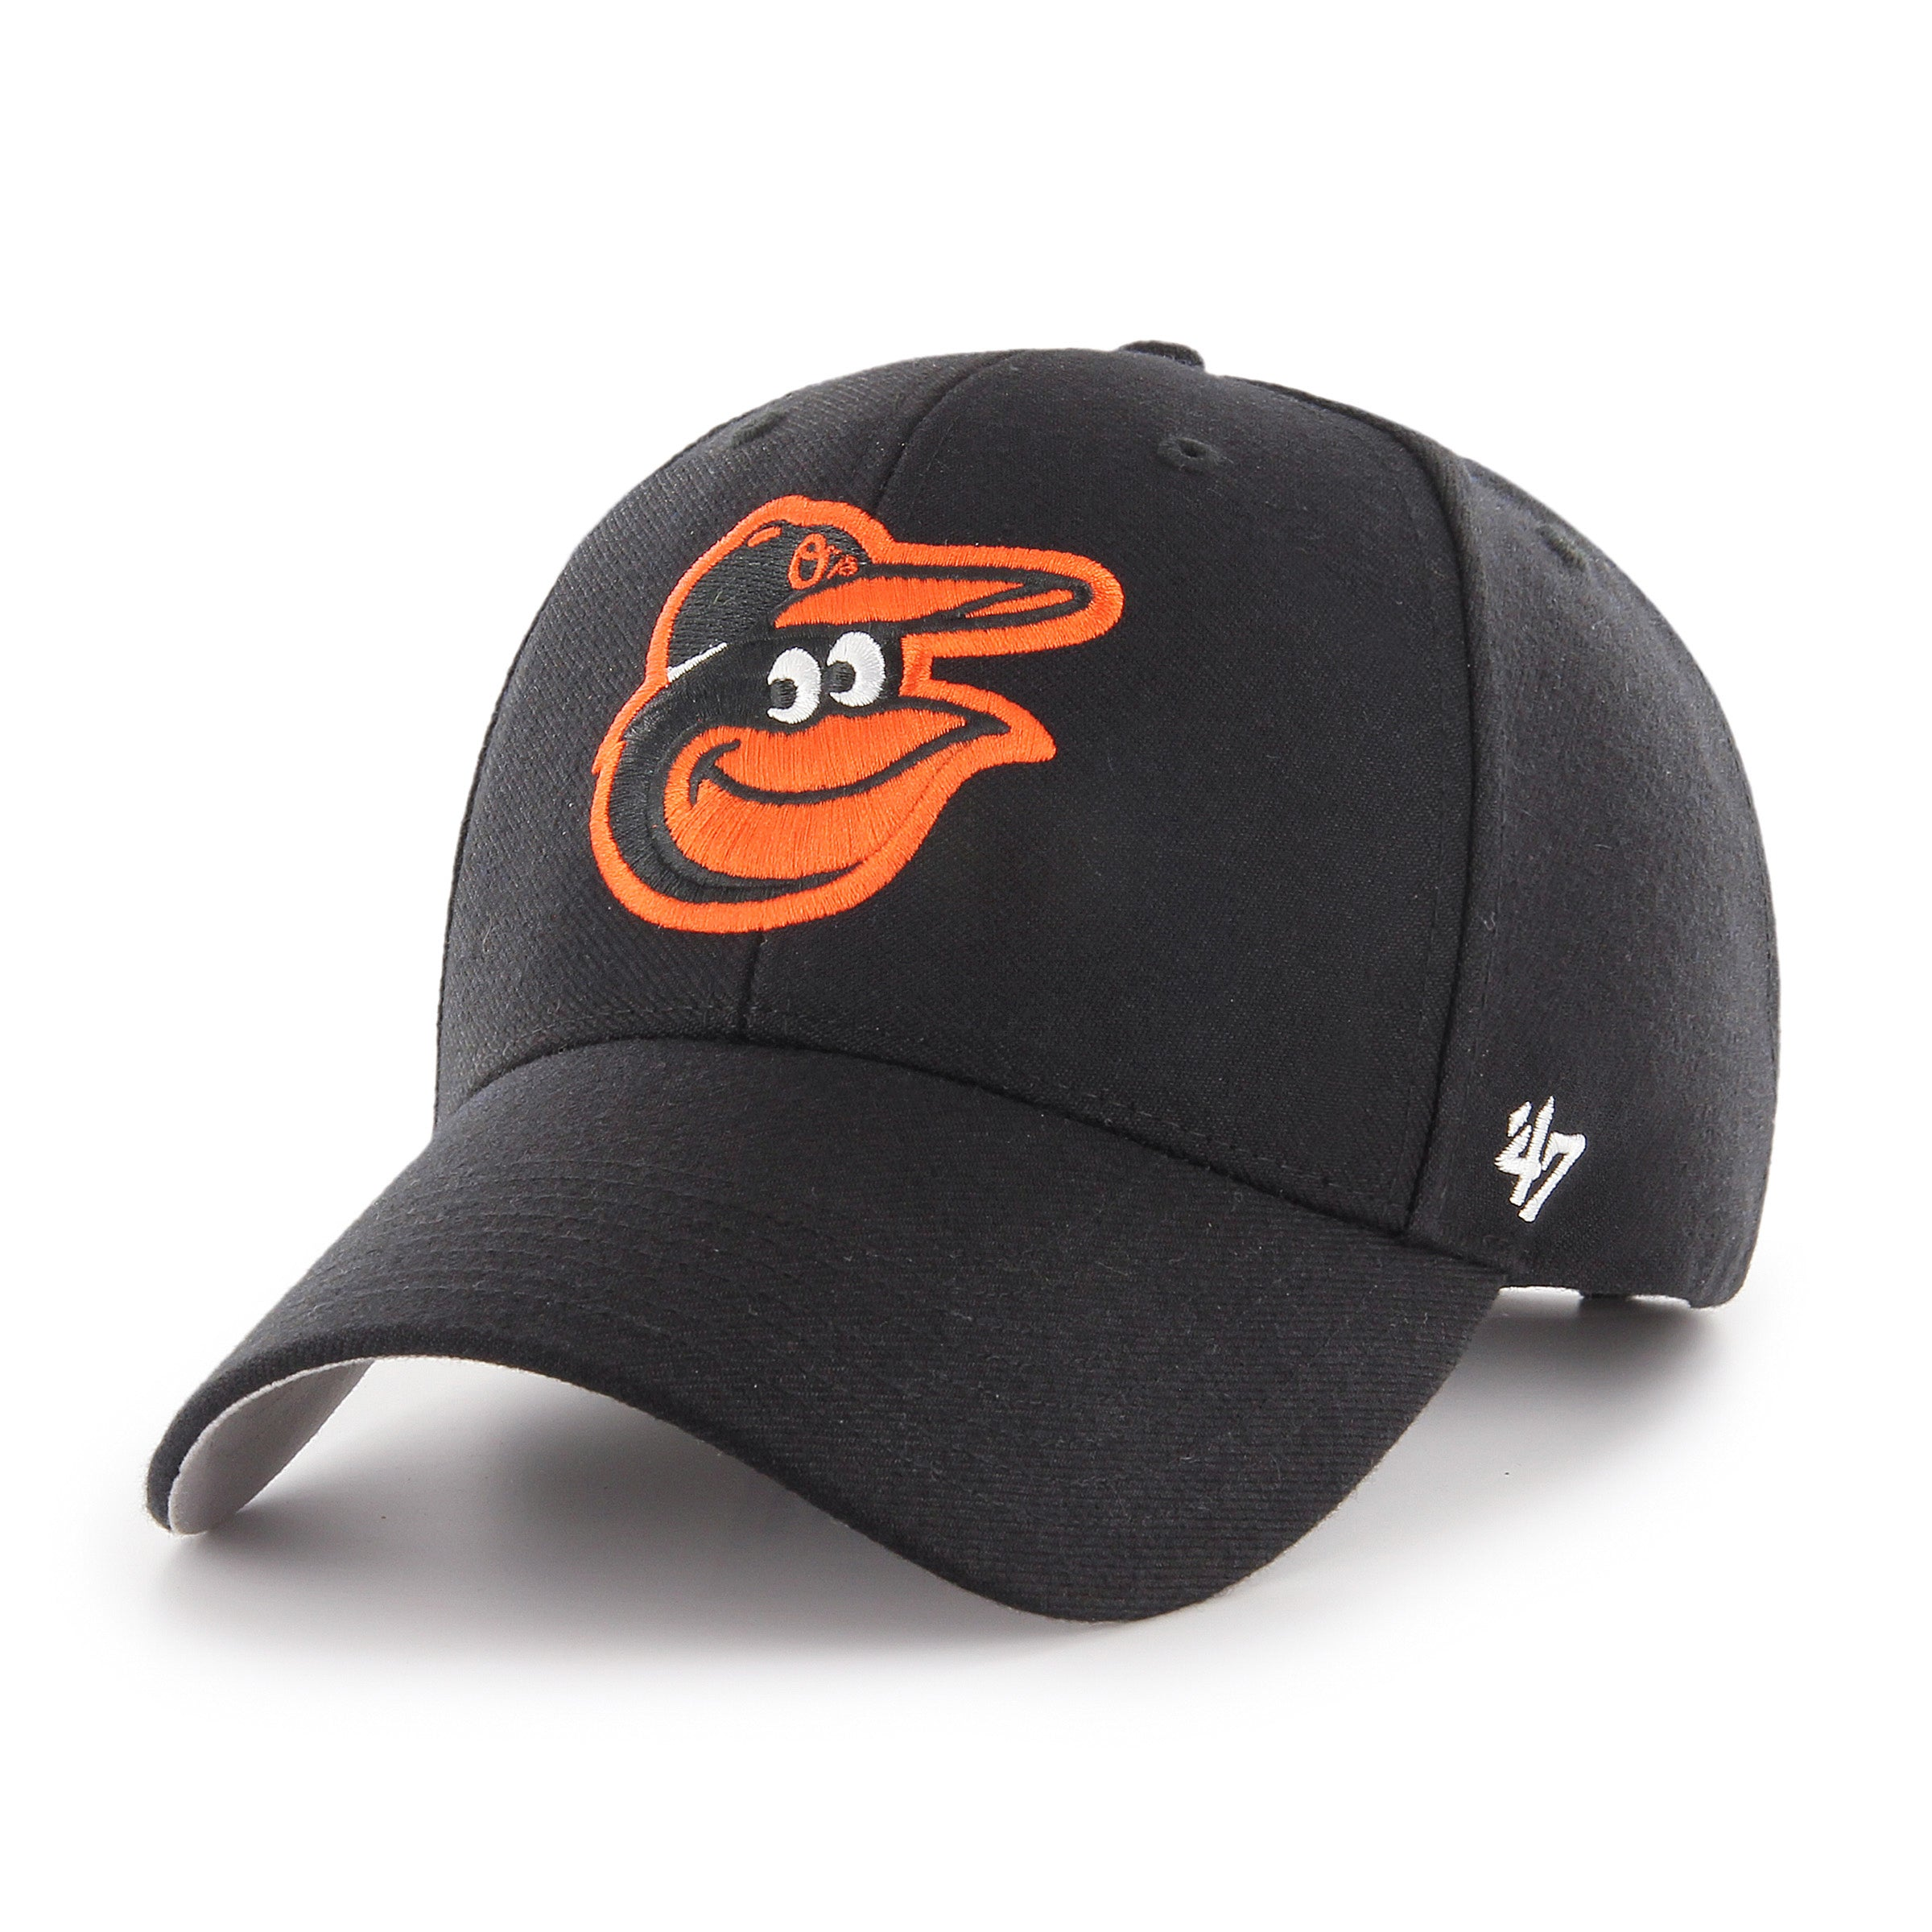 Baltimore Orioles (MLB) - Structured Baseball Cap